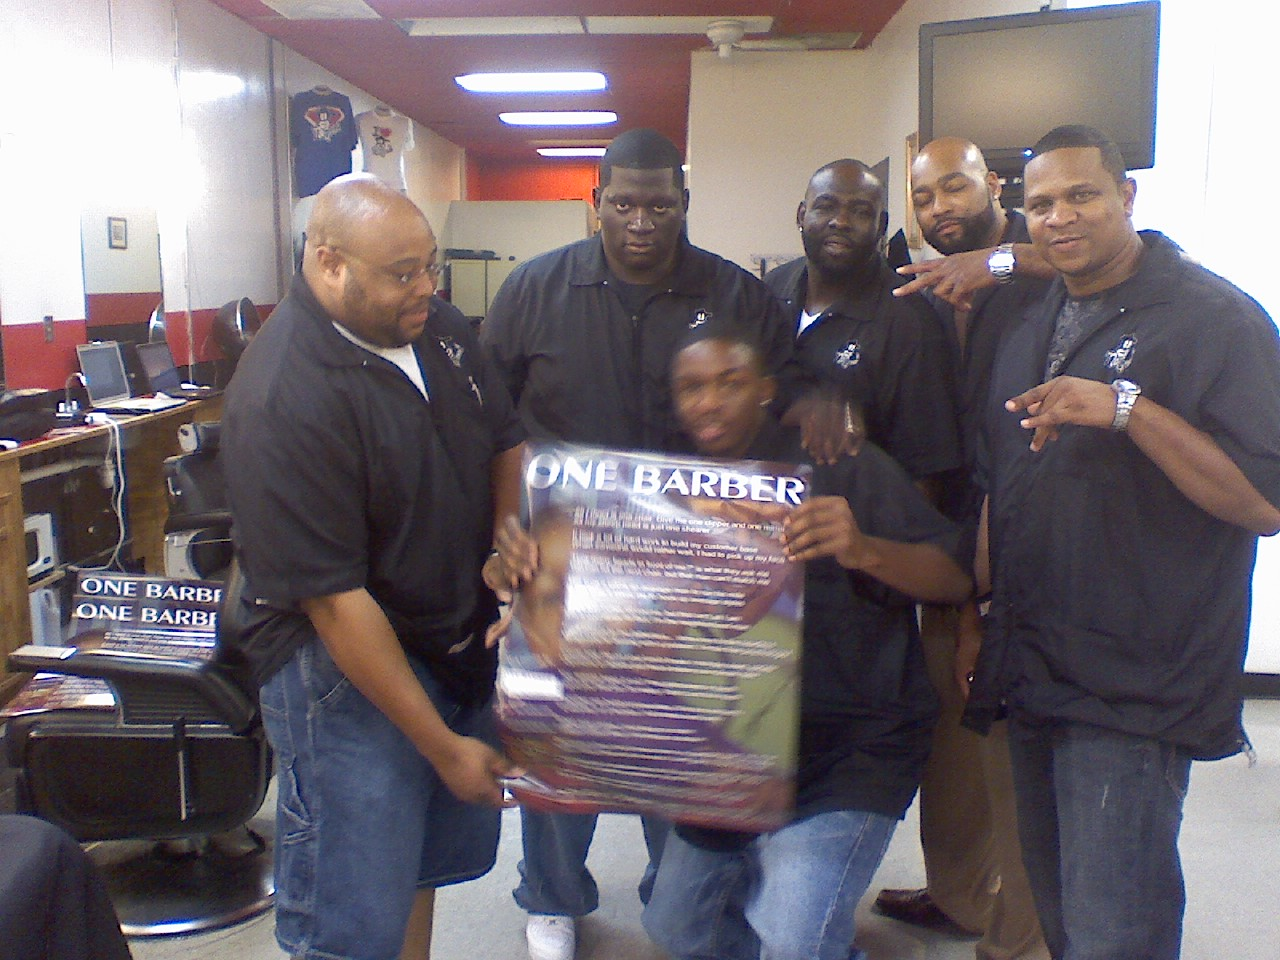 ONE BARBER > North Carolina Barber Shops in NC - hair shops including ...